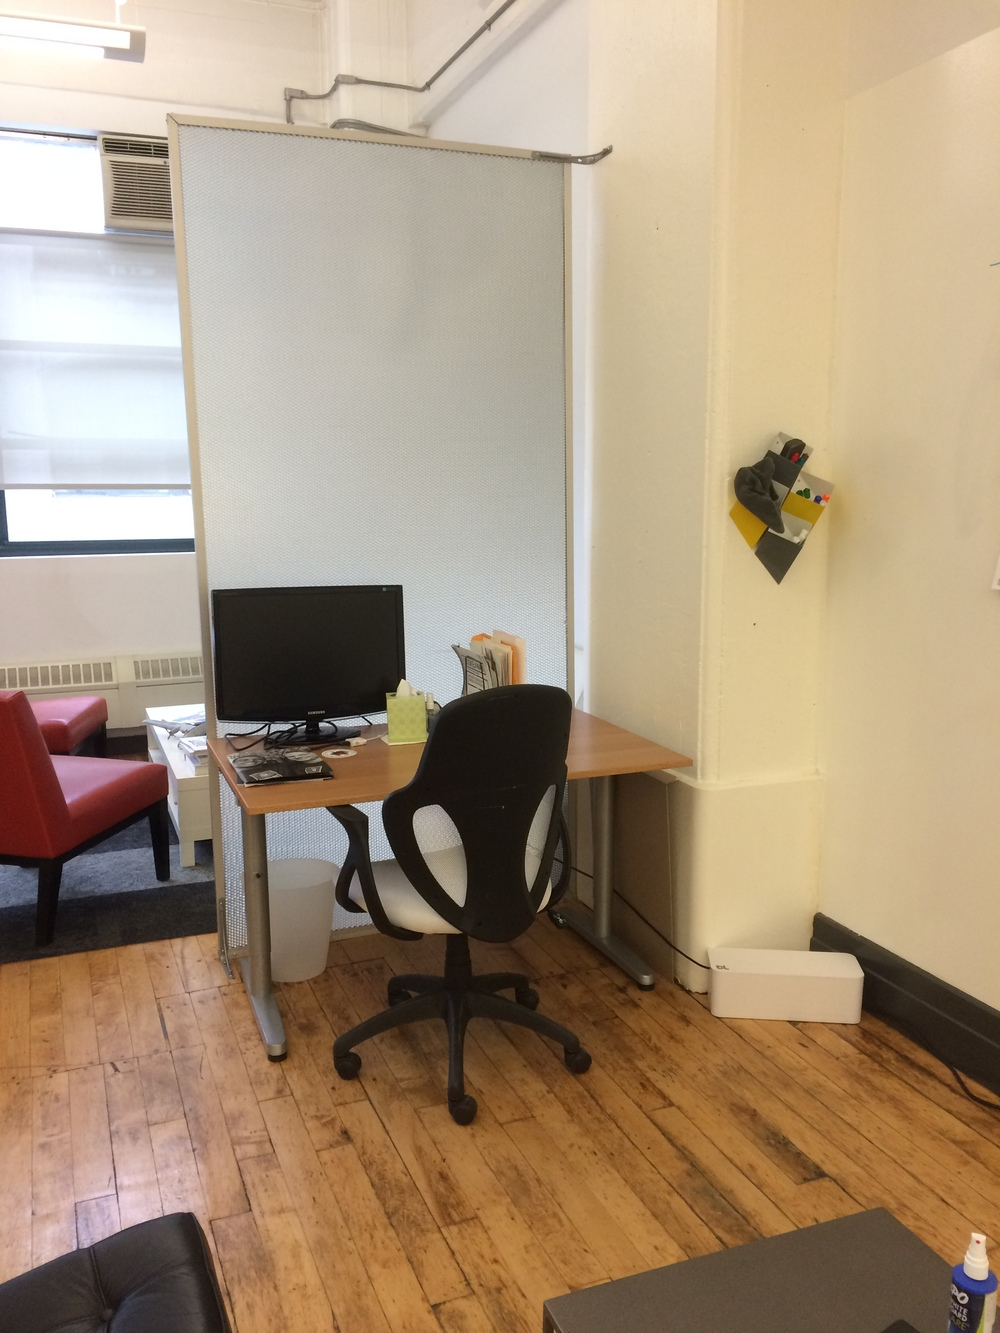 Cubby desk - $650 a month Includes - Desk space and chair, printer availability, monitor if needed, paper storage & stationary. Trash disposal. Access to private conference rooms in building with whiteboard. Access to private phone booth,  shared couch spaces and kitchen.